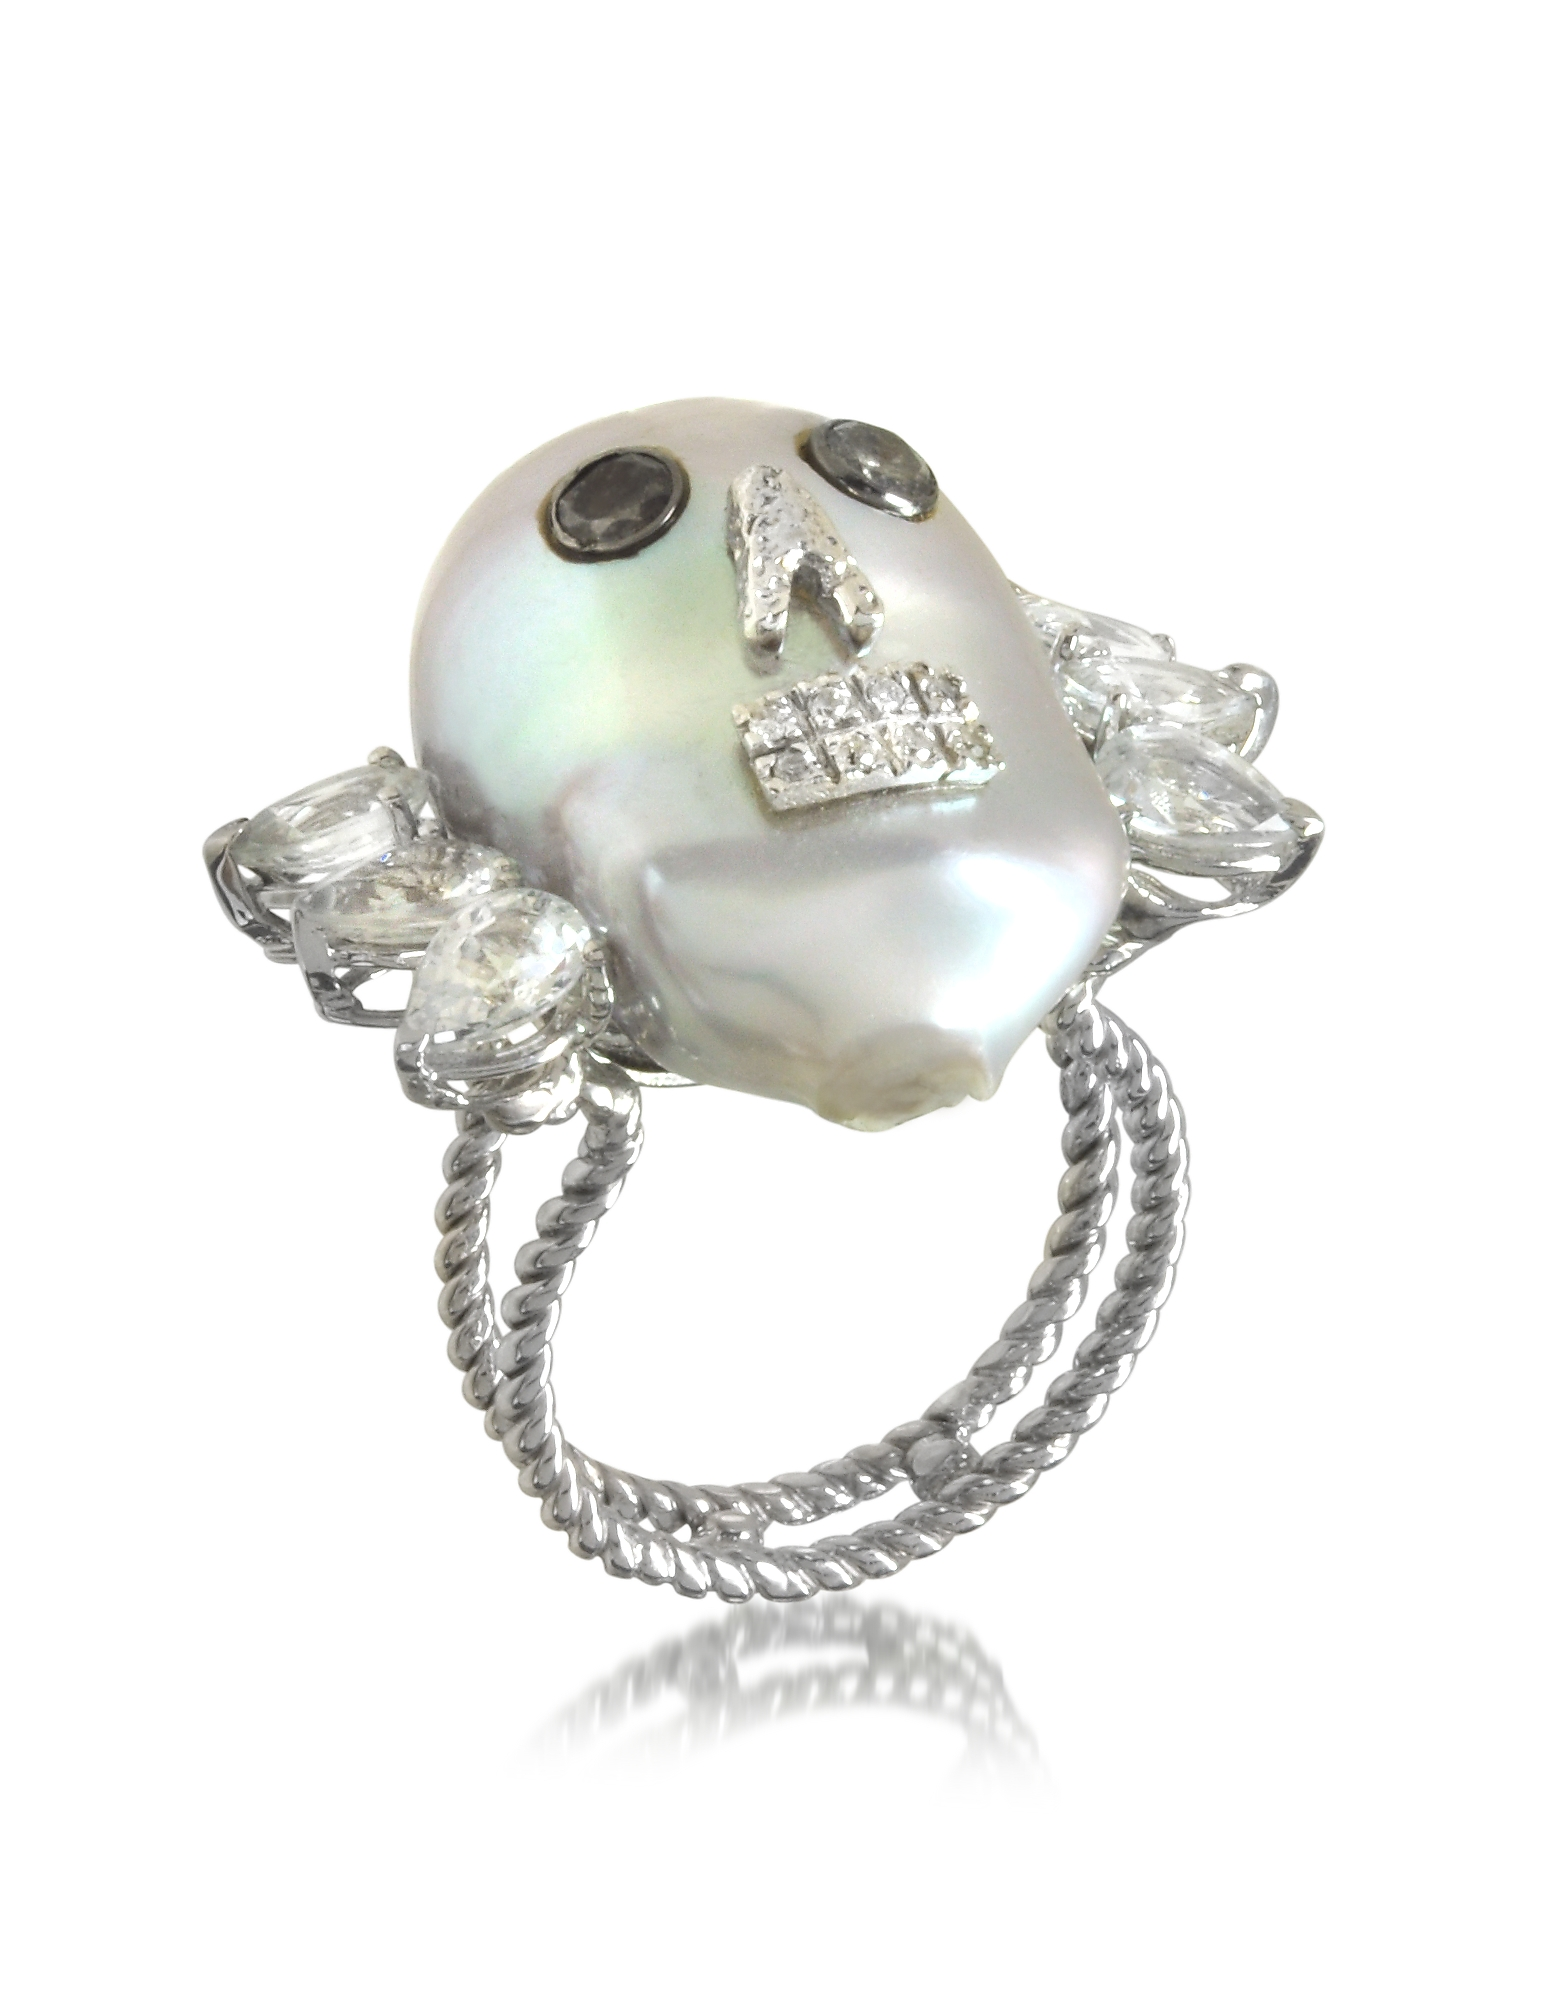 Pearl Skull 18K White Gold Ring w/Diamonds and White Sapphires